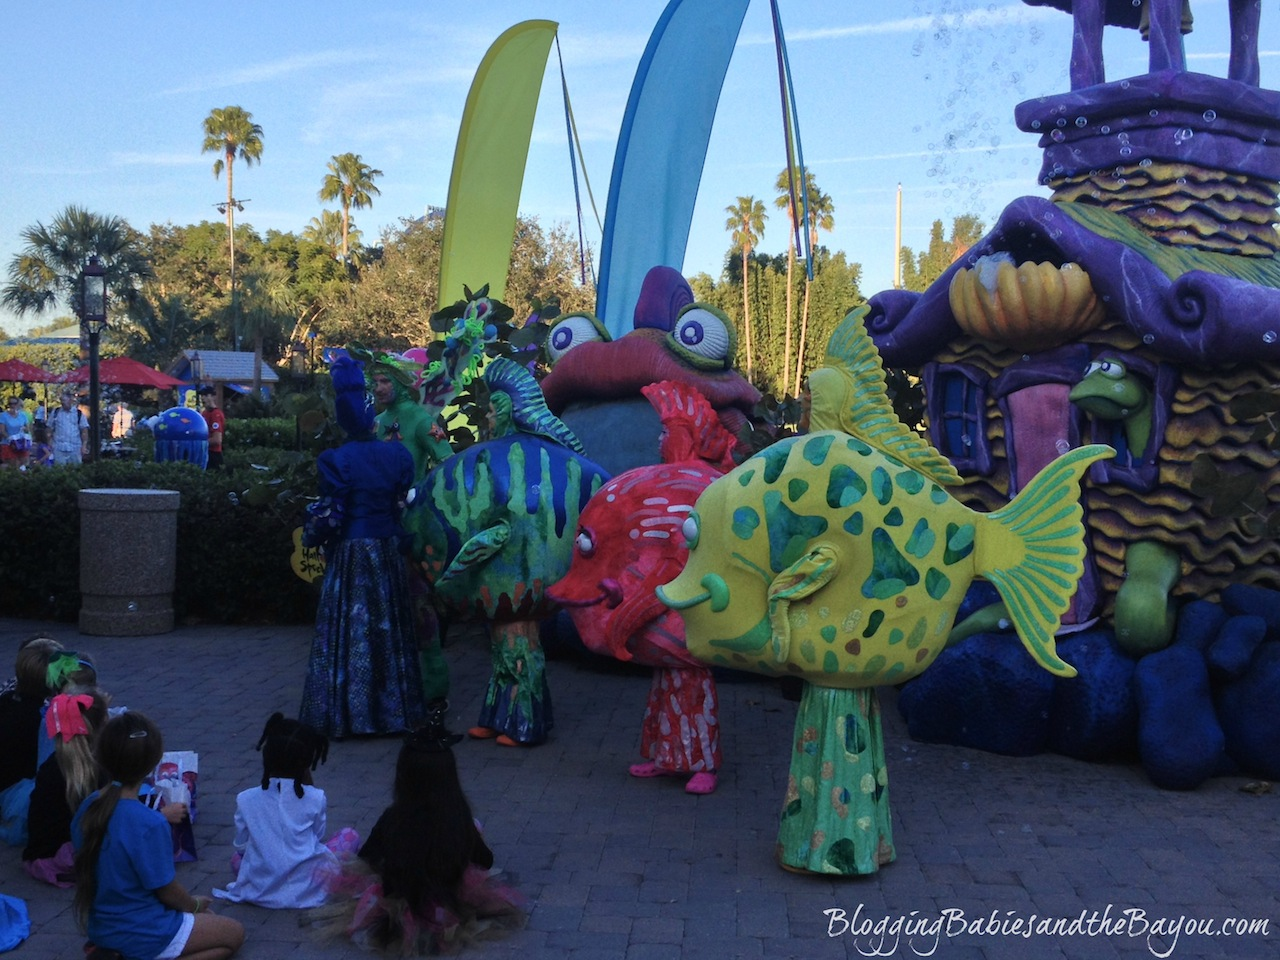 Creative Childrens Education at Theme Parks like Sea World Orlando Florida #BayouTravel